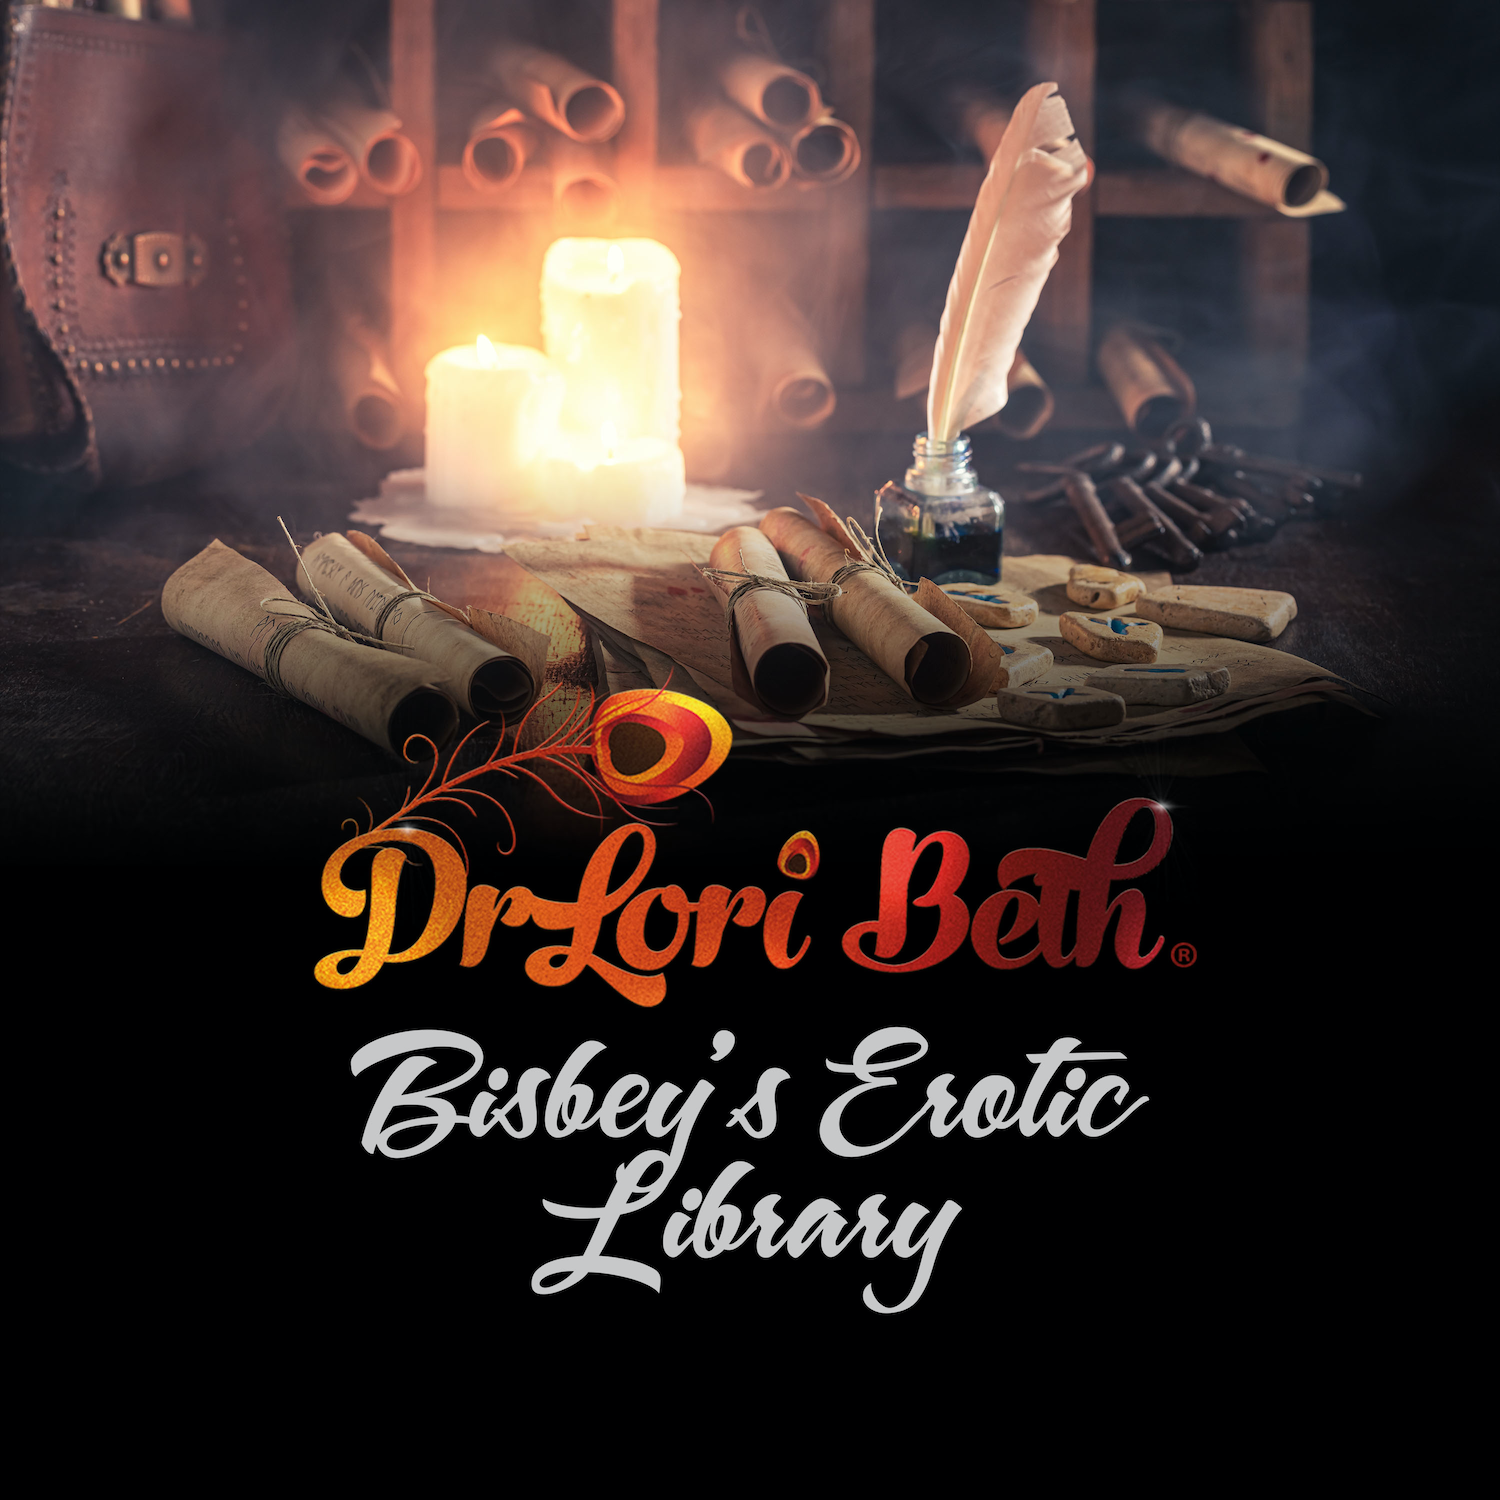 Artwork for podcast Dr Lori Beth Bisbey's Erotic Library